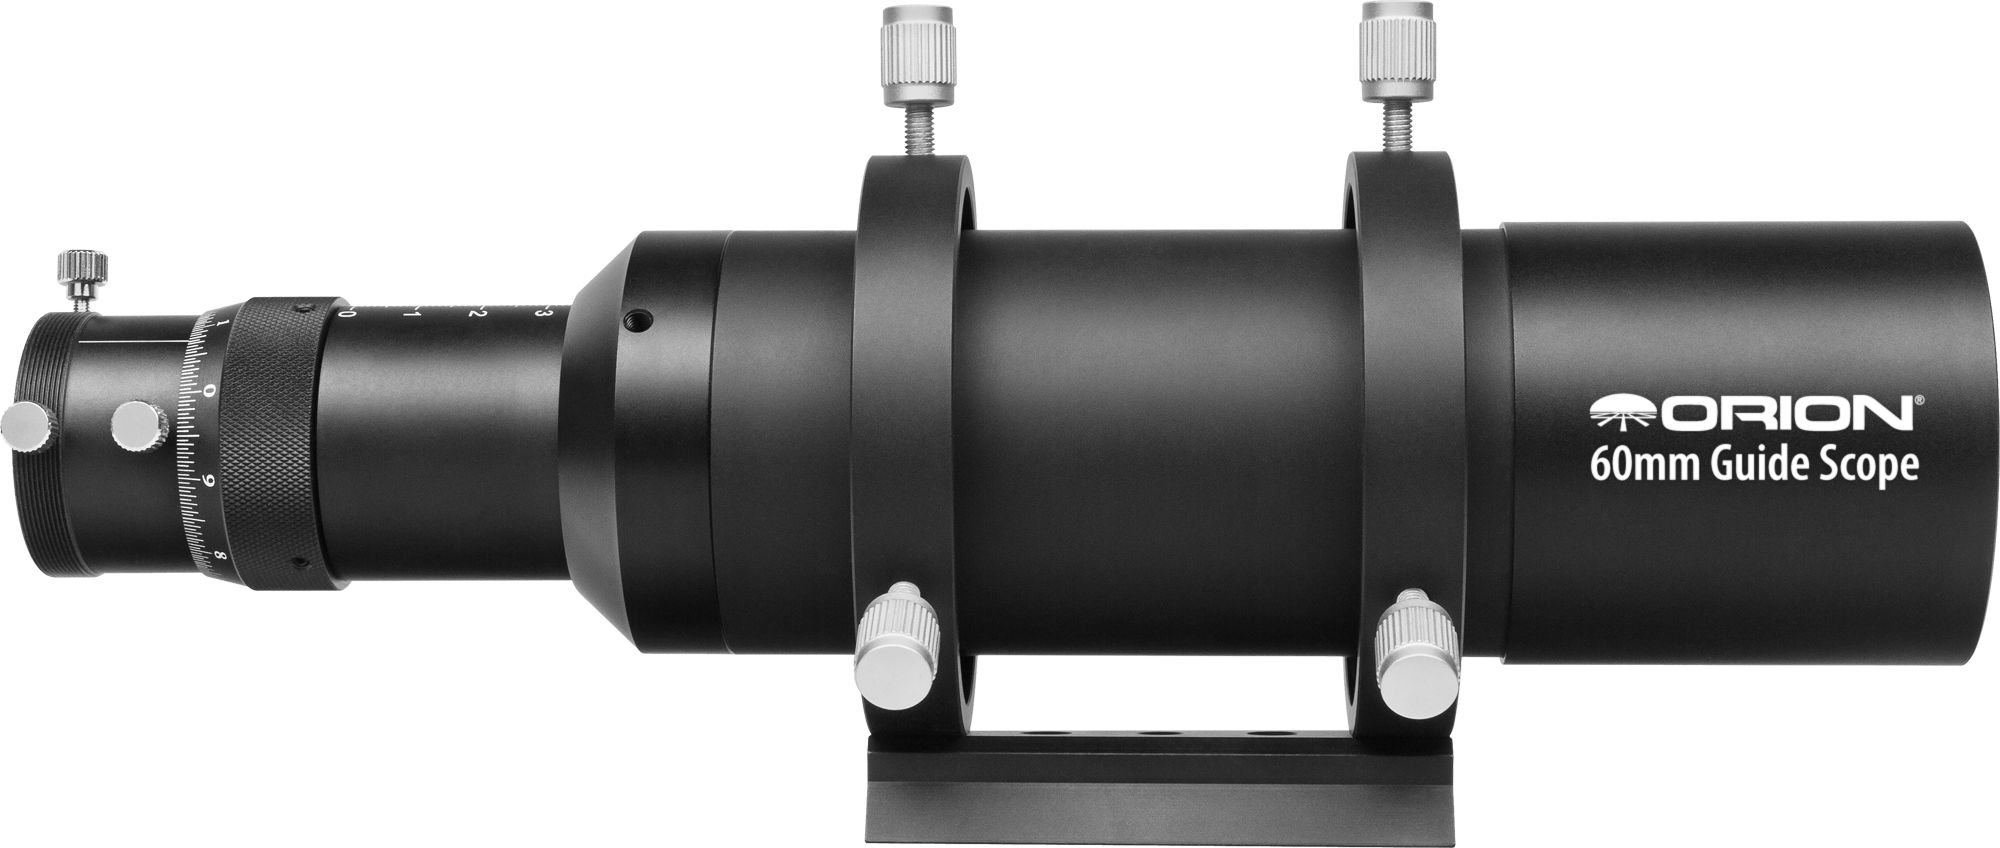 Orion 60mm Multi-Use Guide Scope with Helical Focuser by Orion (Image #6)